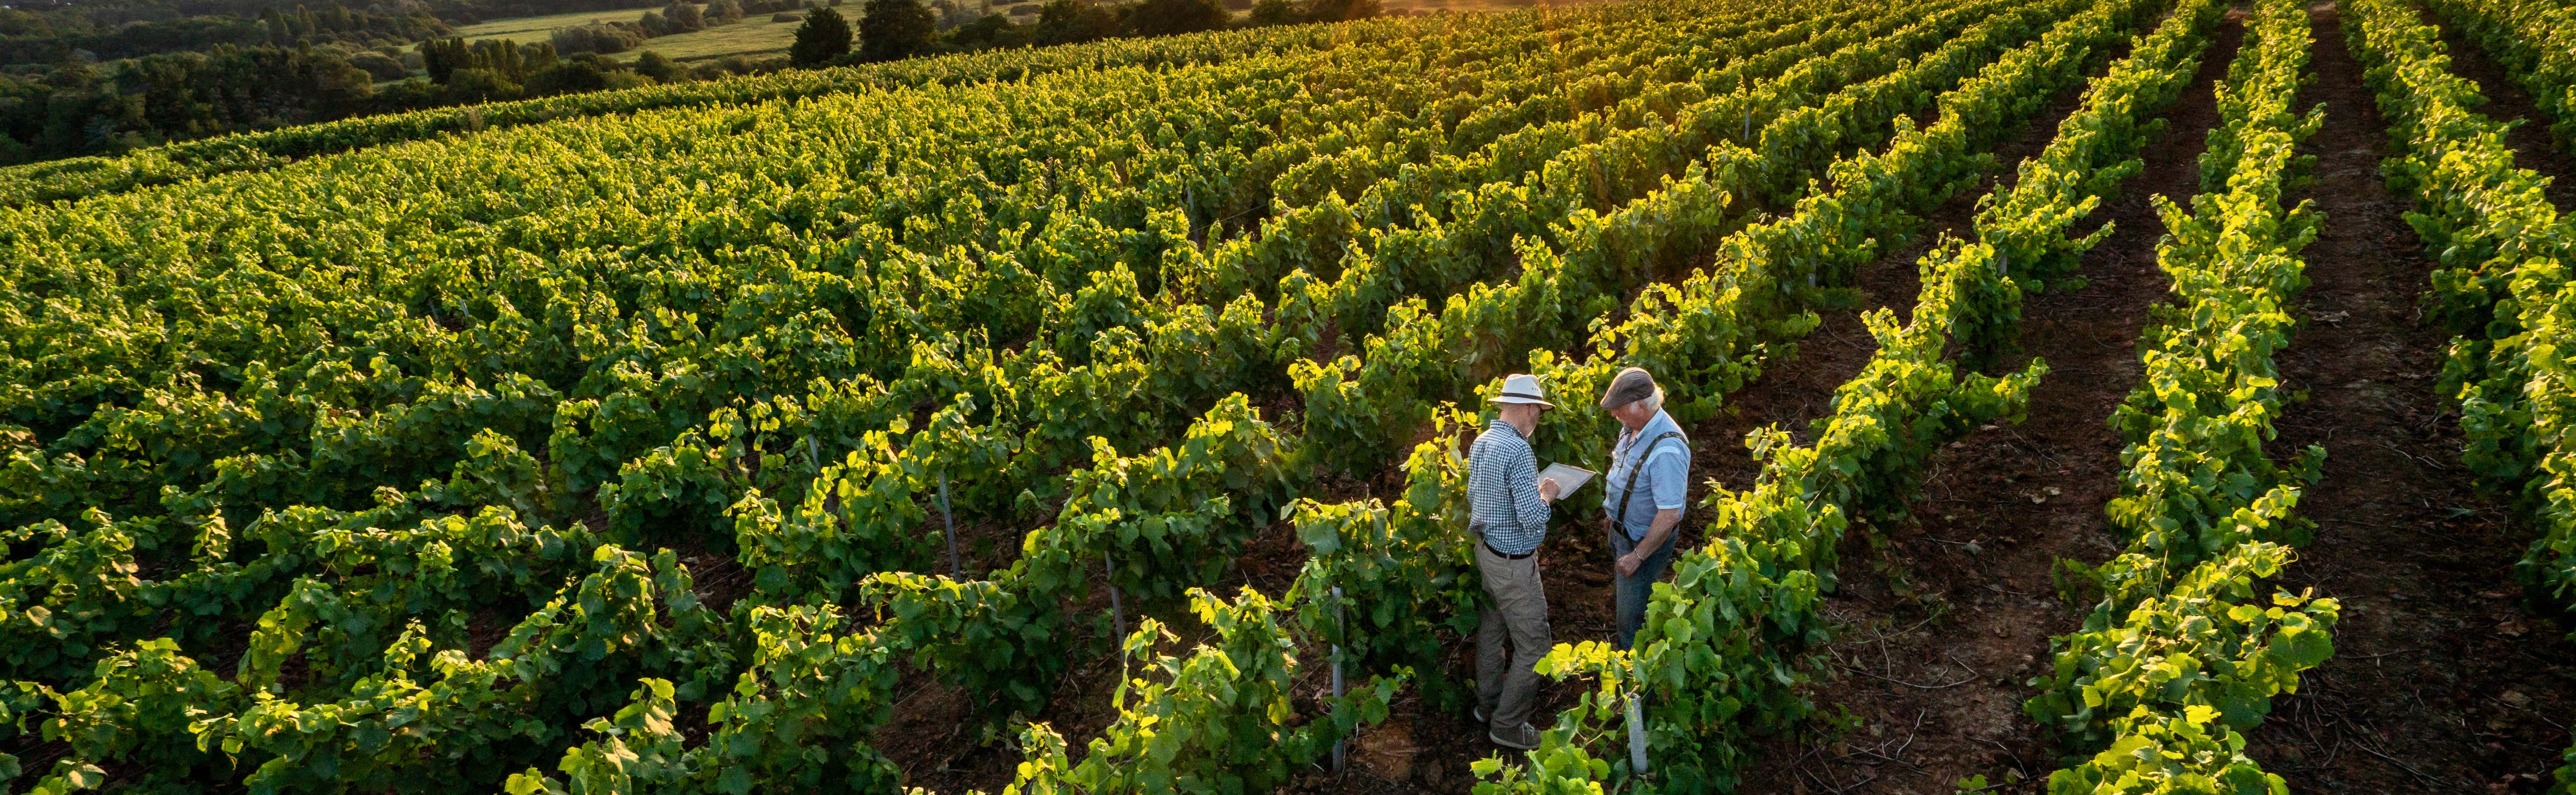 Digital technology used in winelands